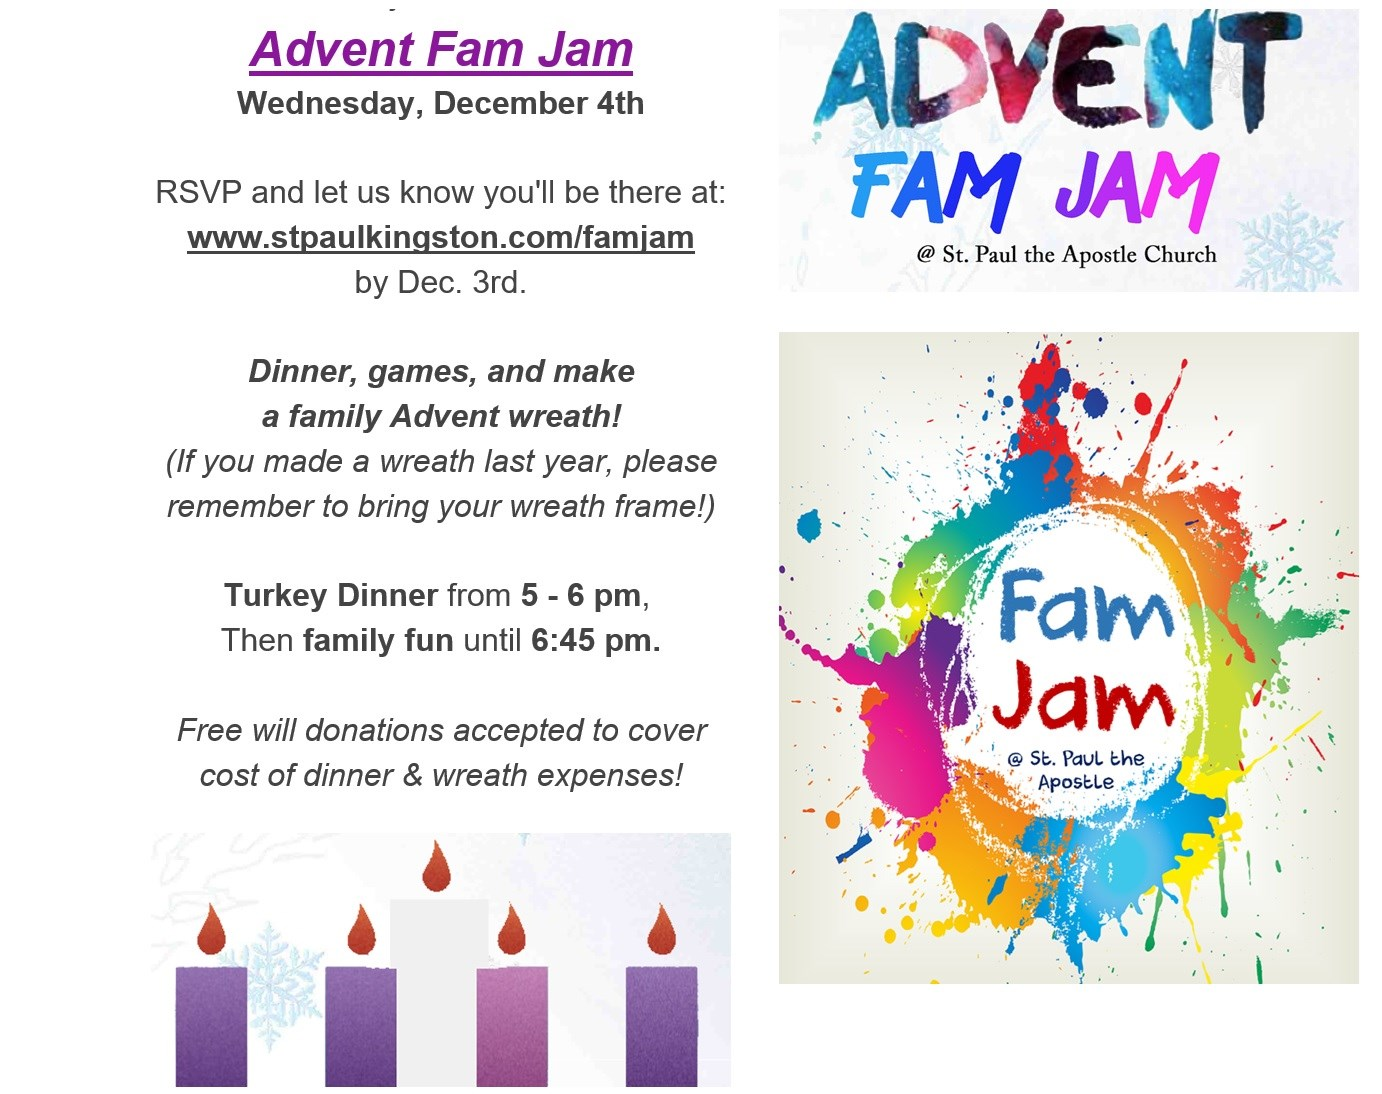 Advent Fam Jam.jpg